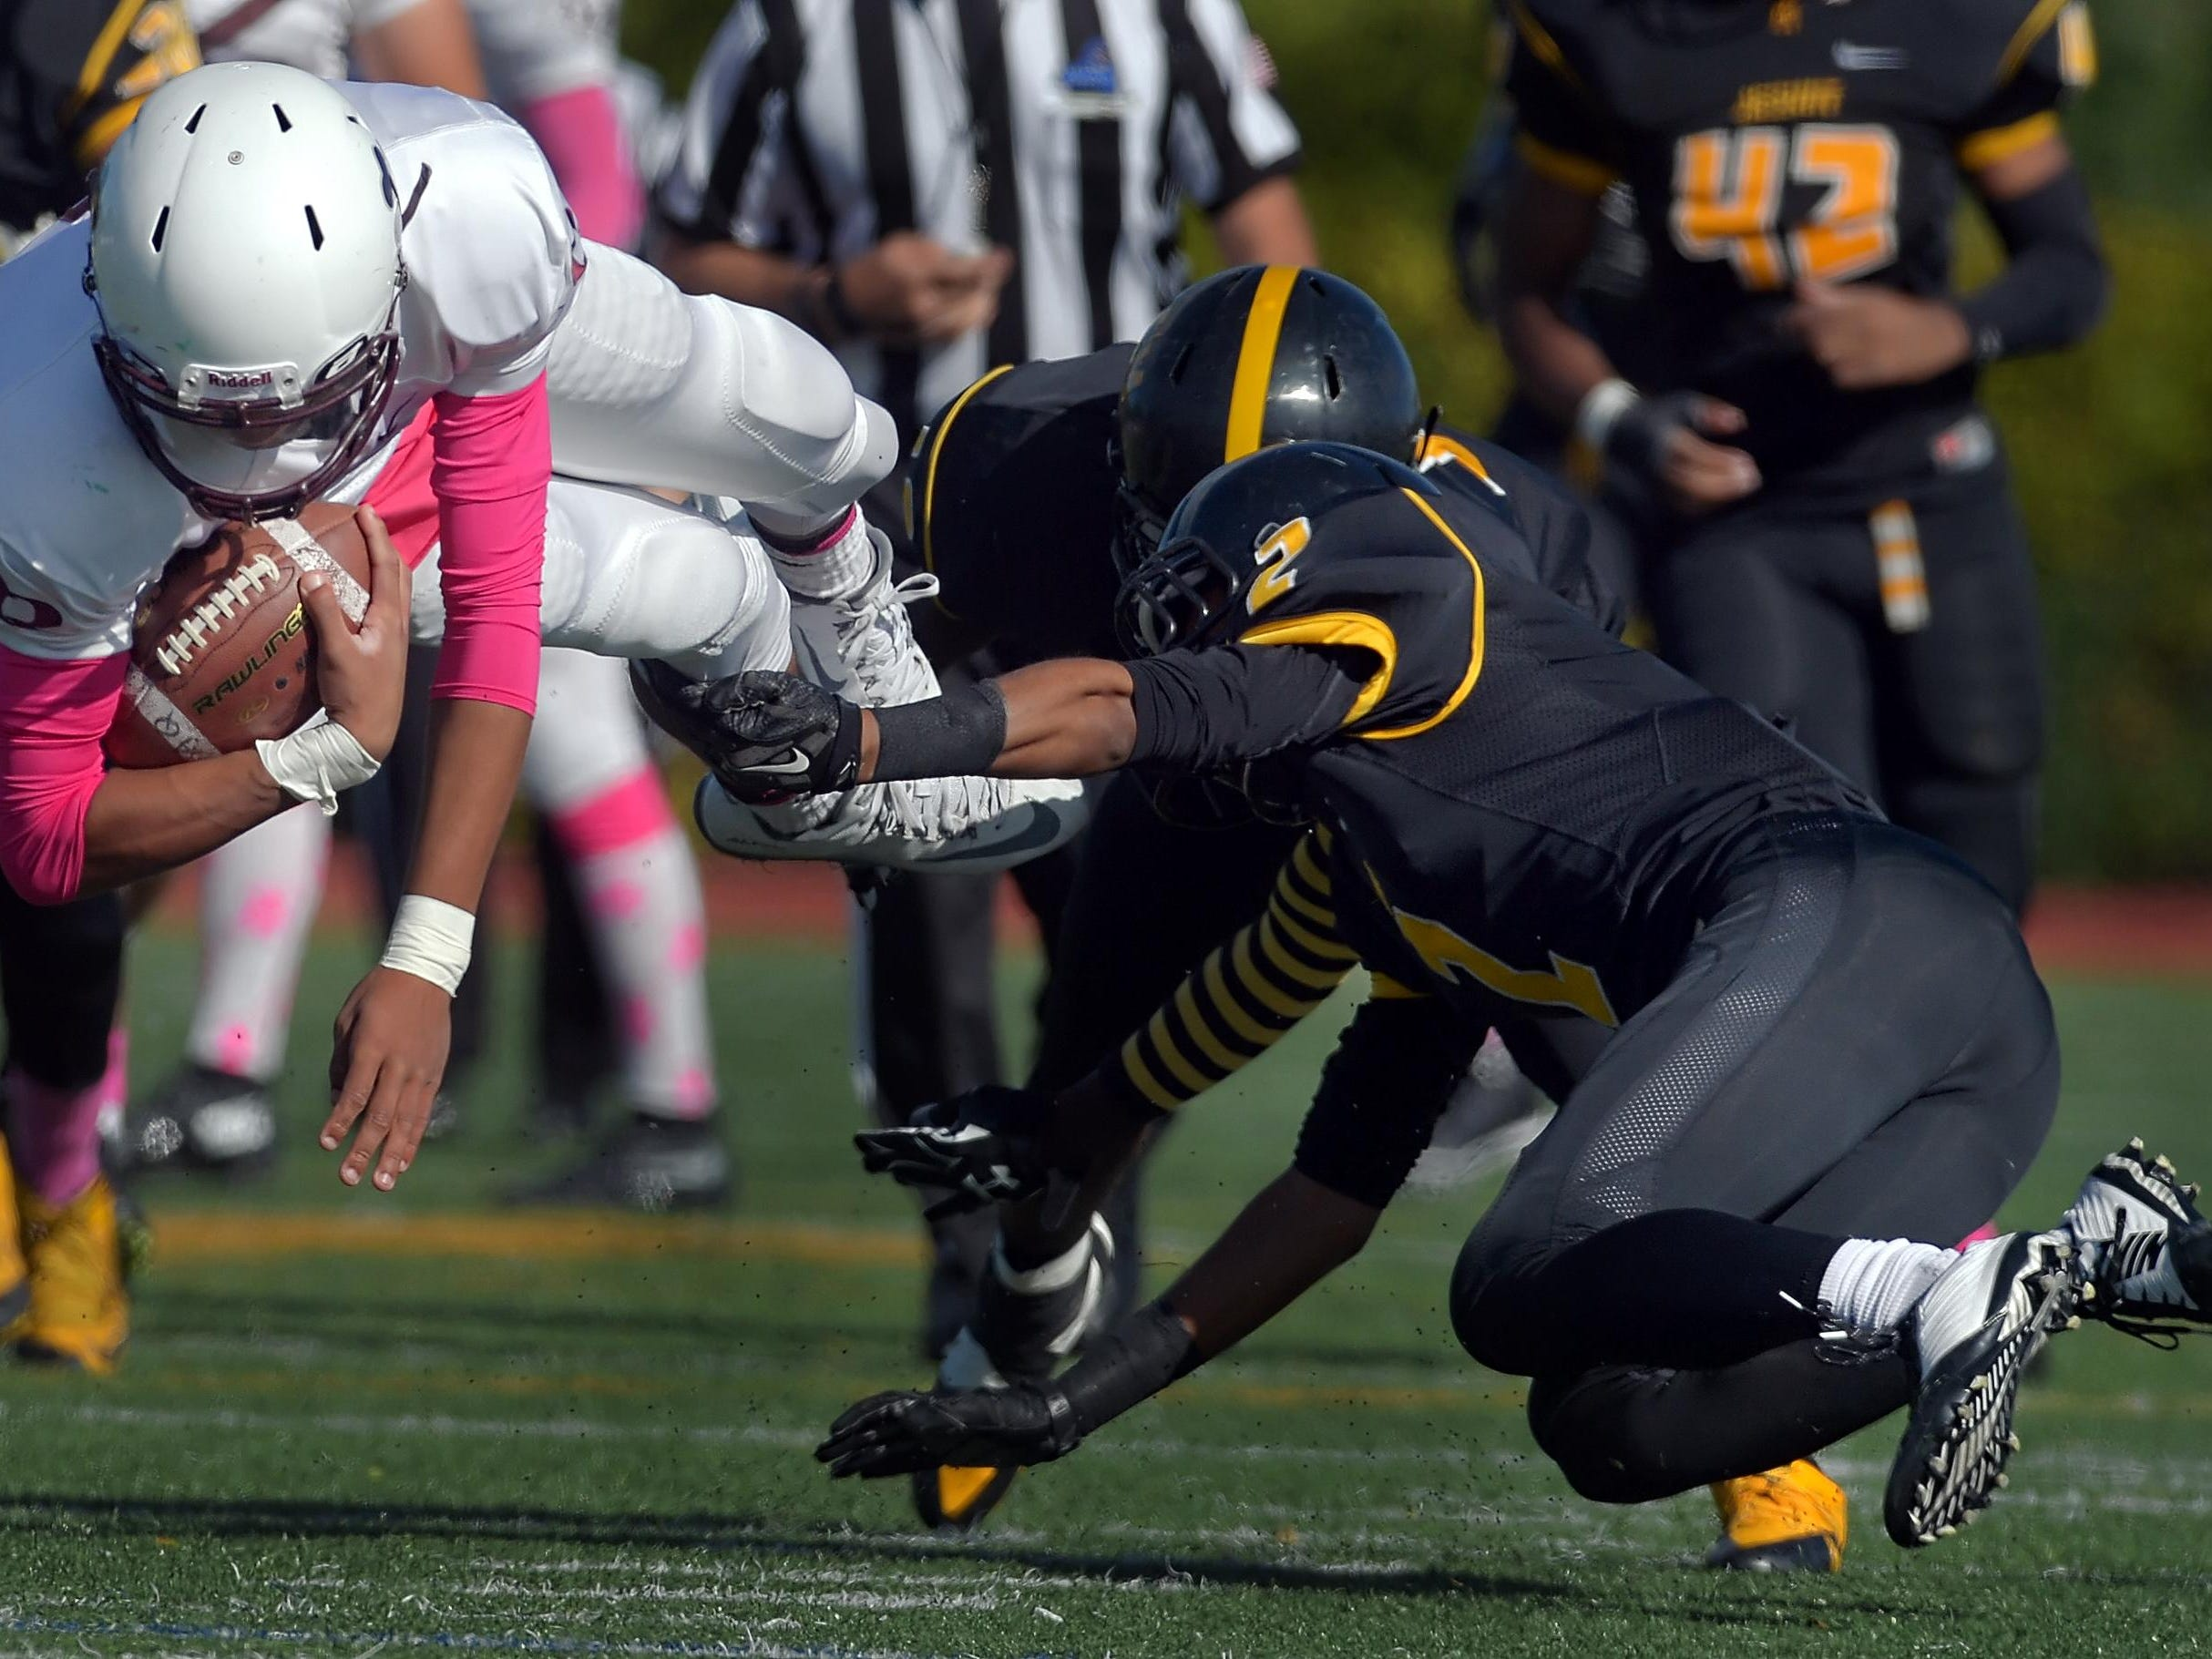 Aquinas' Jason Hawkes, left, is tripped up by McQuaid's Noah Williams during a regular season game played at McQuaid Jesuit High School on Saturday, October 10, 2015.